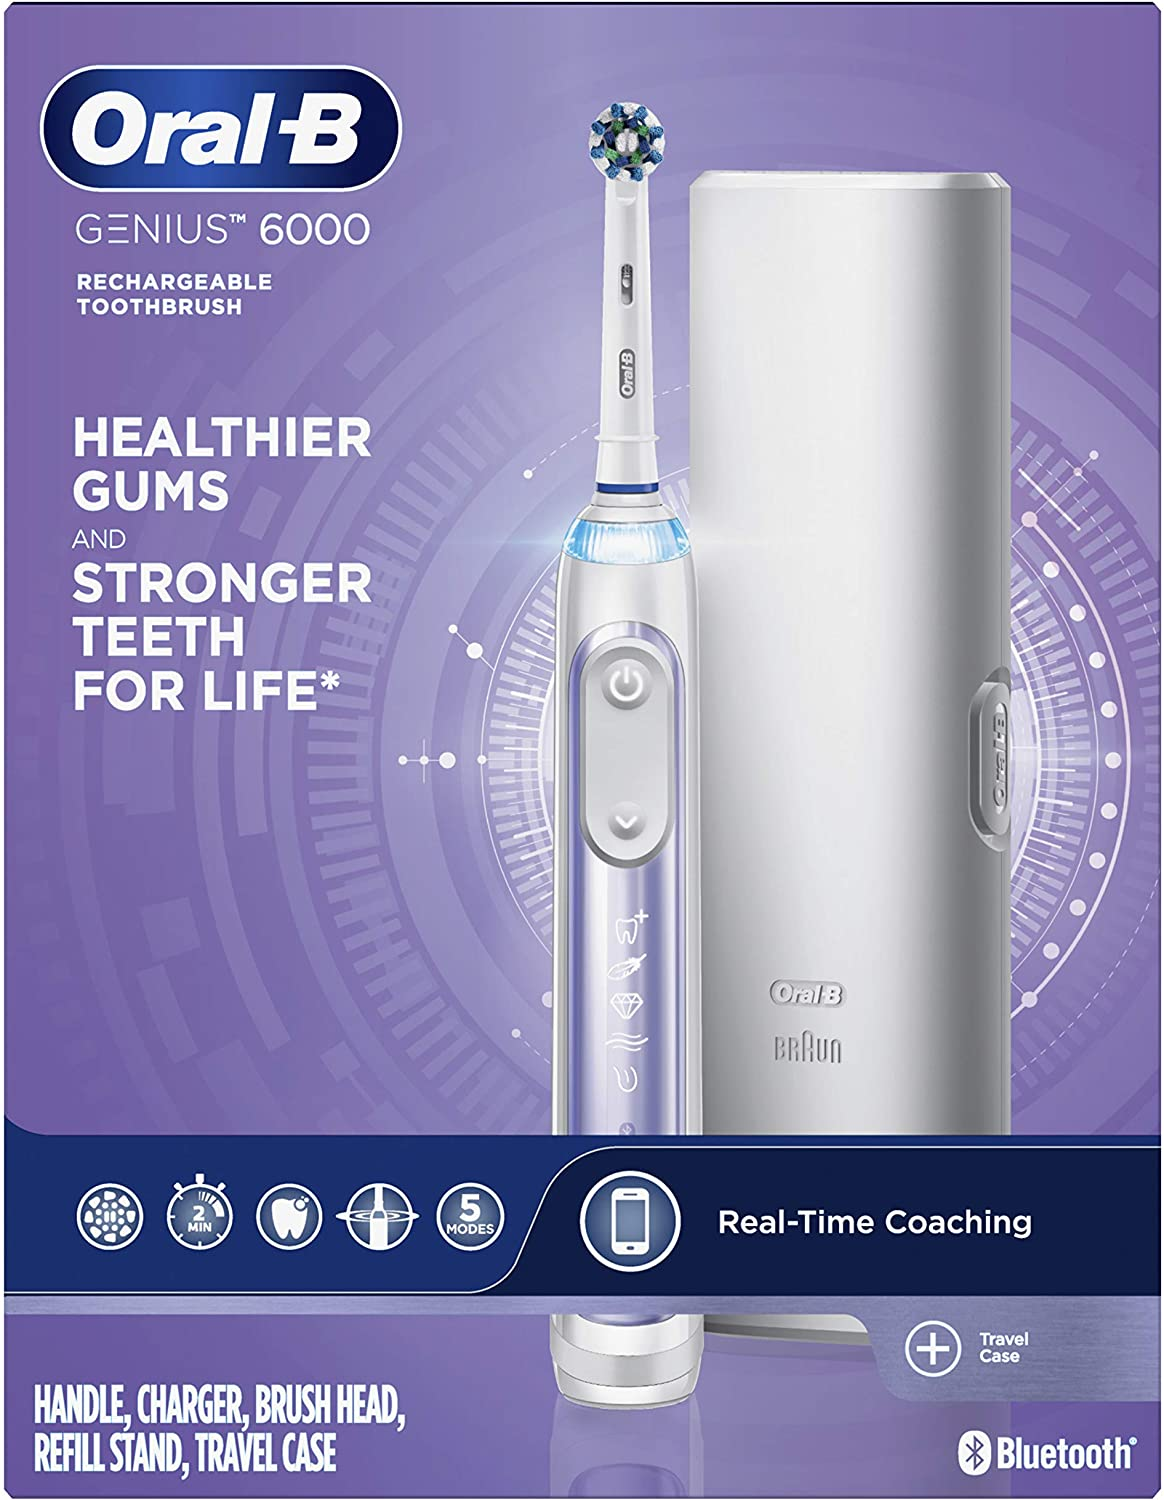 Oral-B Genius 6000 New mail order Electric Jacksonville Mall Purple Toothbrush Orchid